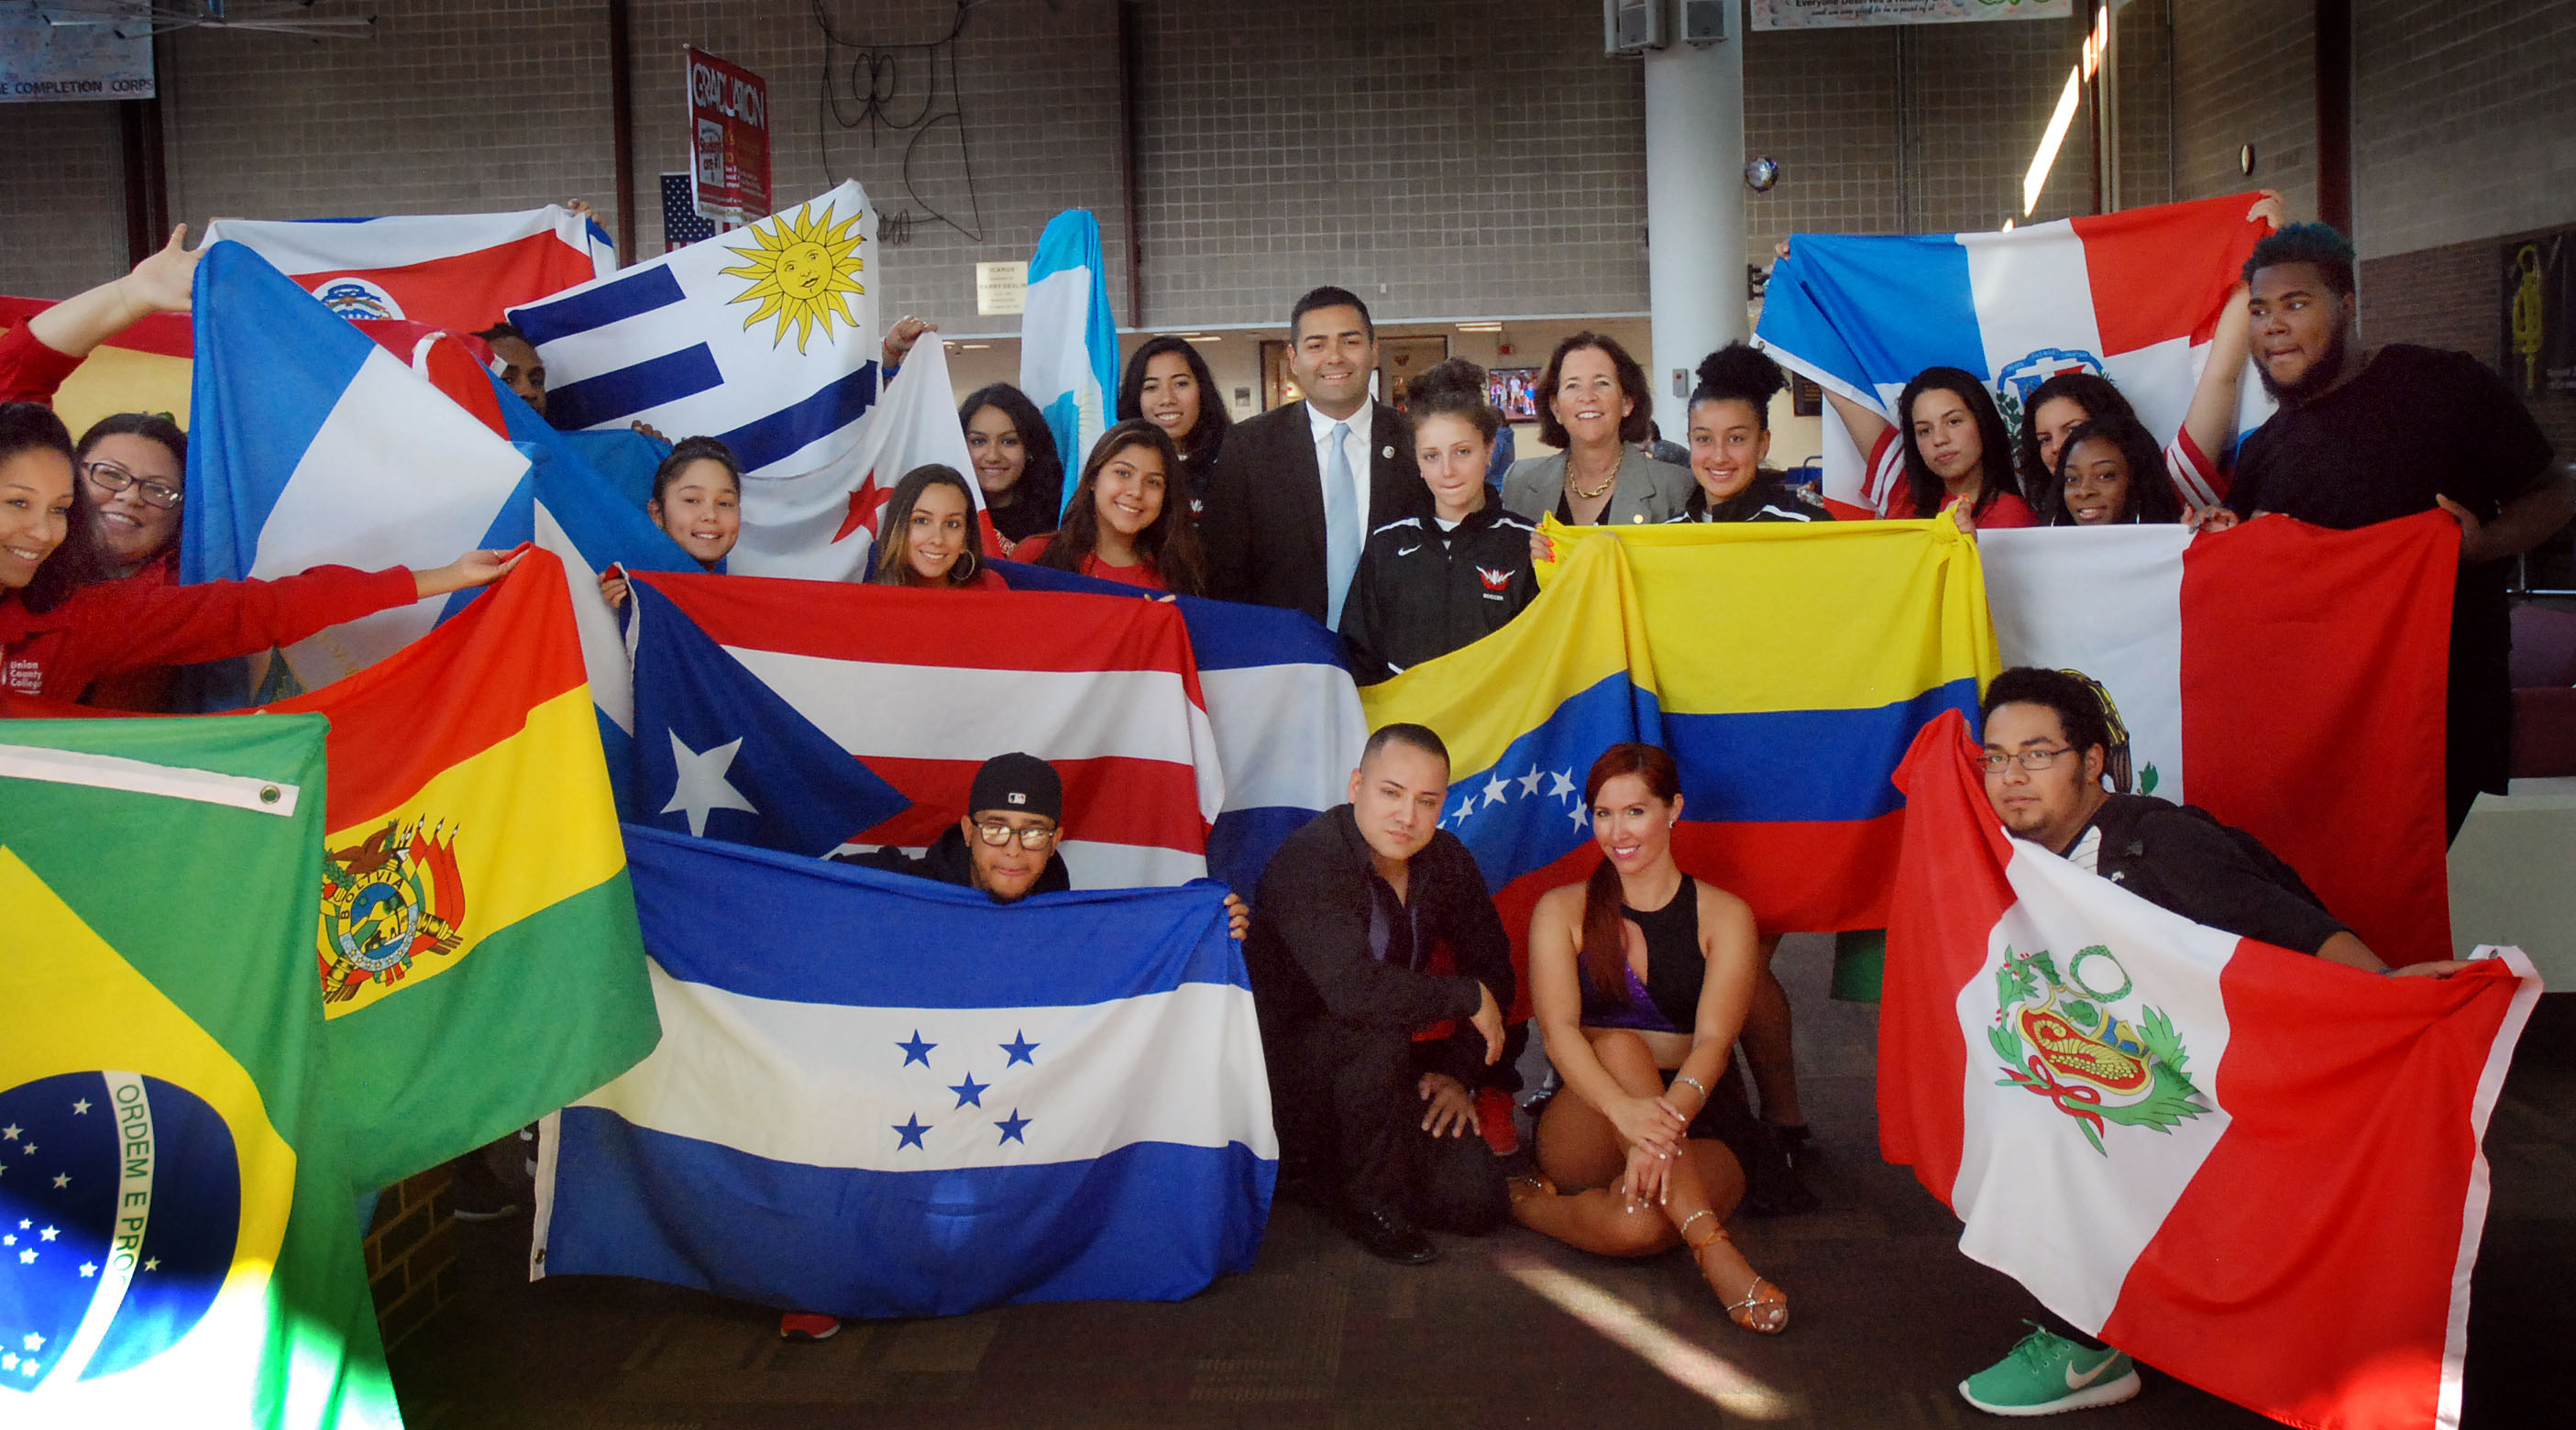 Union County College Celebrates Hispanic Heritage Month